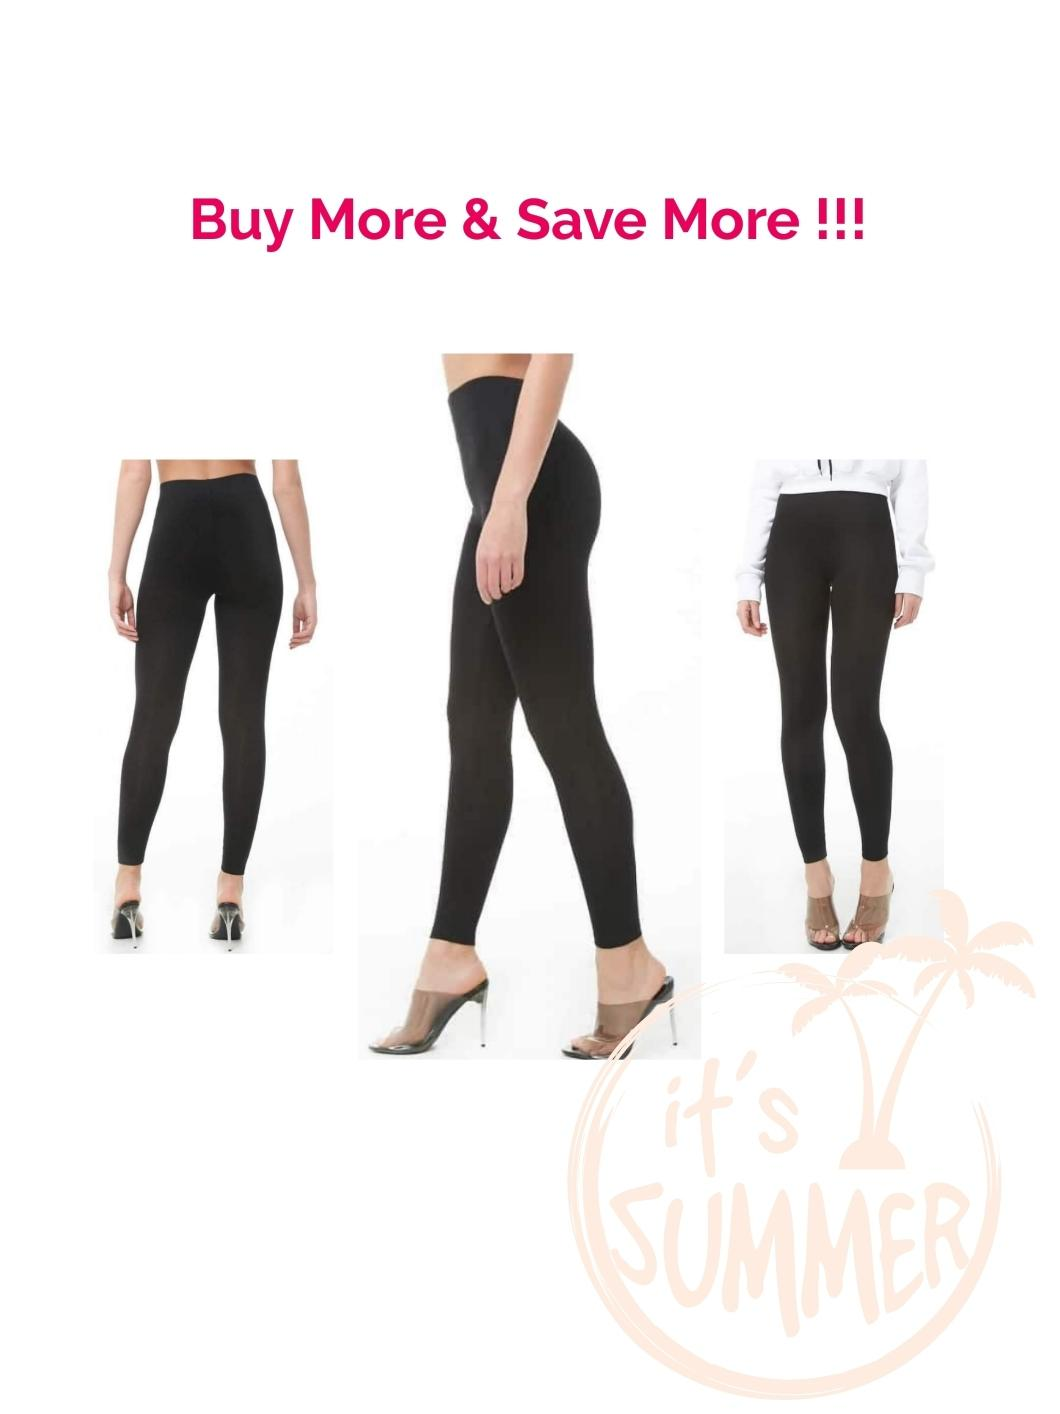 65e7a33be7381 Pants for Women for sale - Womens Fashion Pants online brands ...